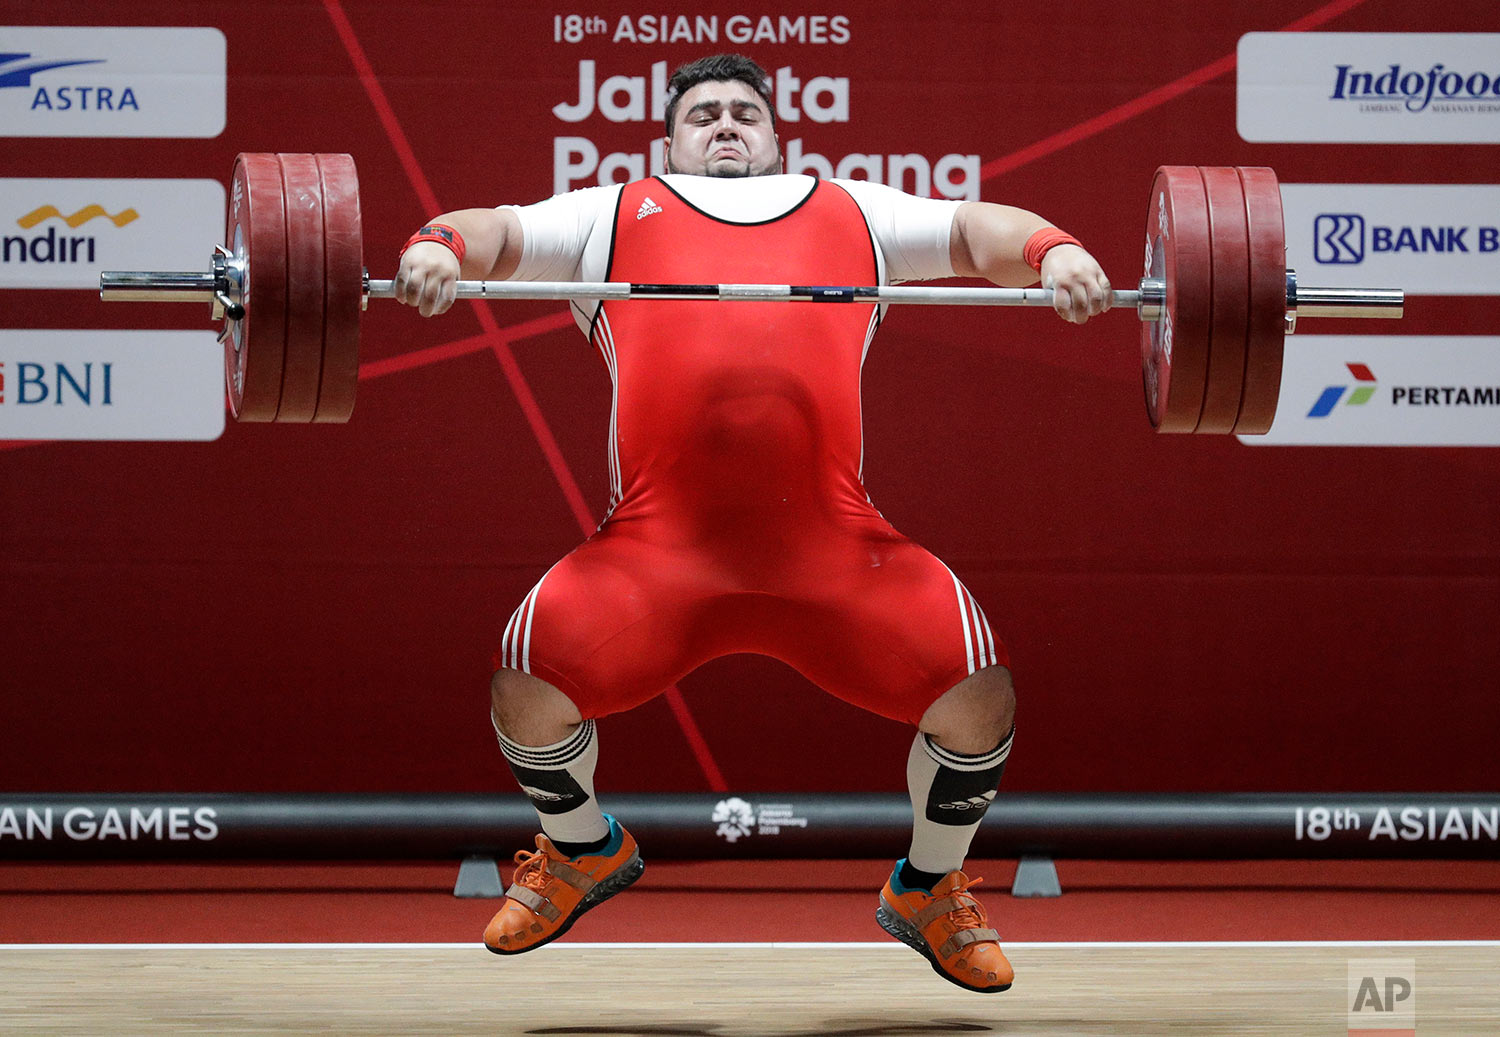 Pakistan's Muhammad Nooh Butt compete at the men's +105kg weightlifting at the 18th Asian Games in Jakarta, Indonesia, Monday, Aug. 27, 2018. (AP Photo/Aaron Favila)